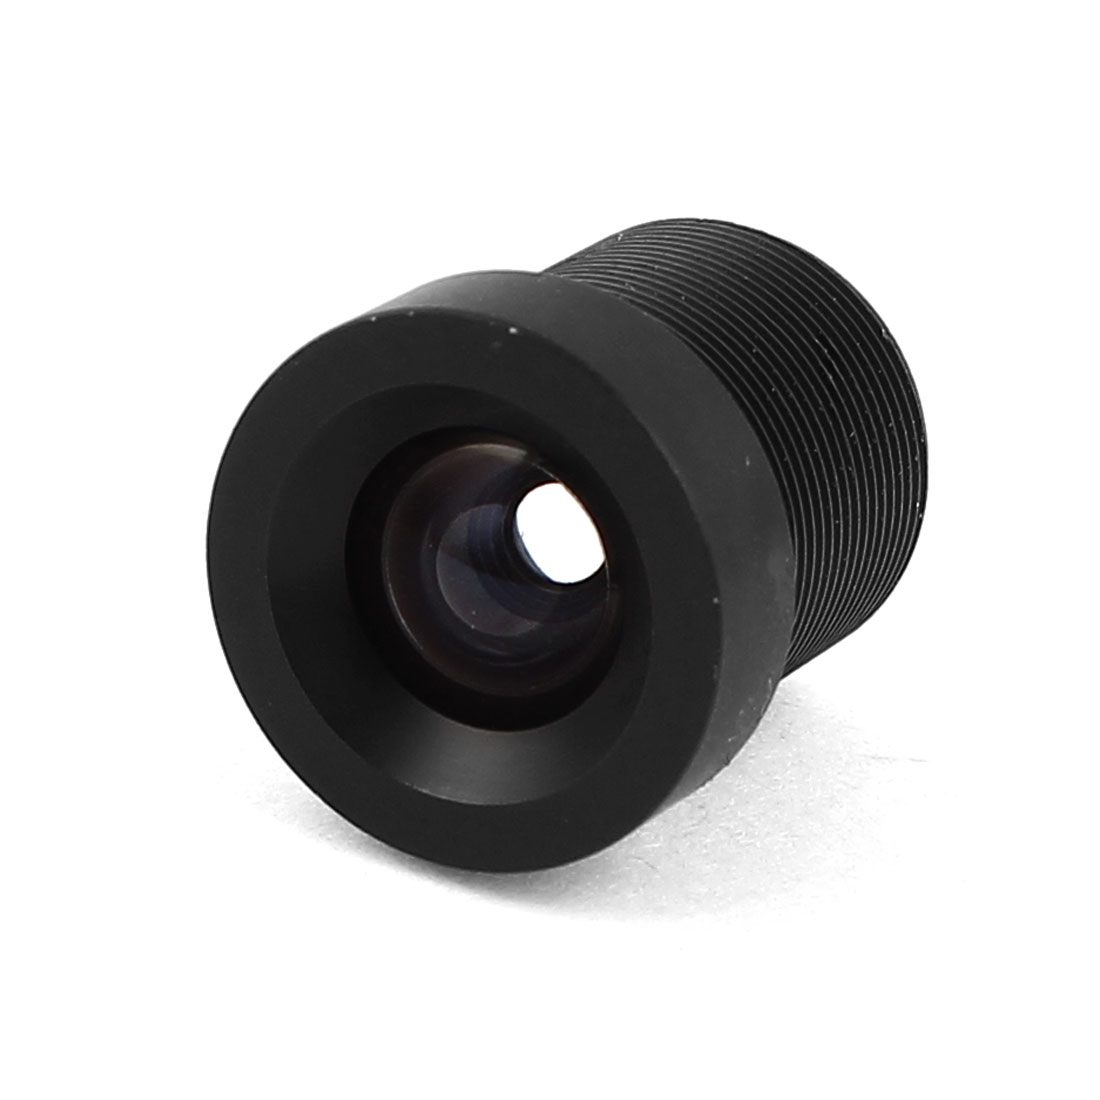 M12 6mm 50 Degree Fixed IRIS Lens for Security CCTV Camera